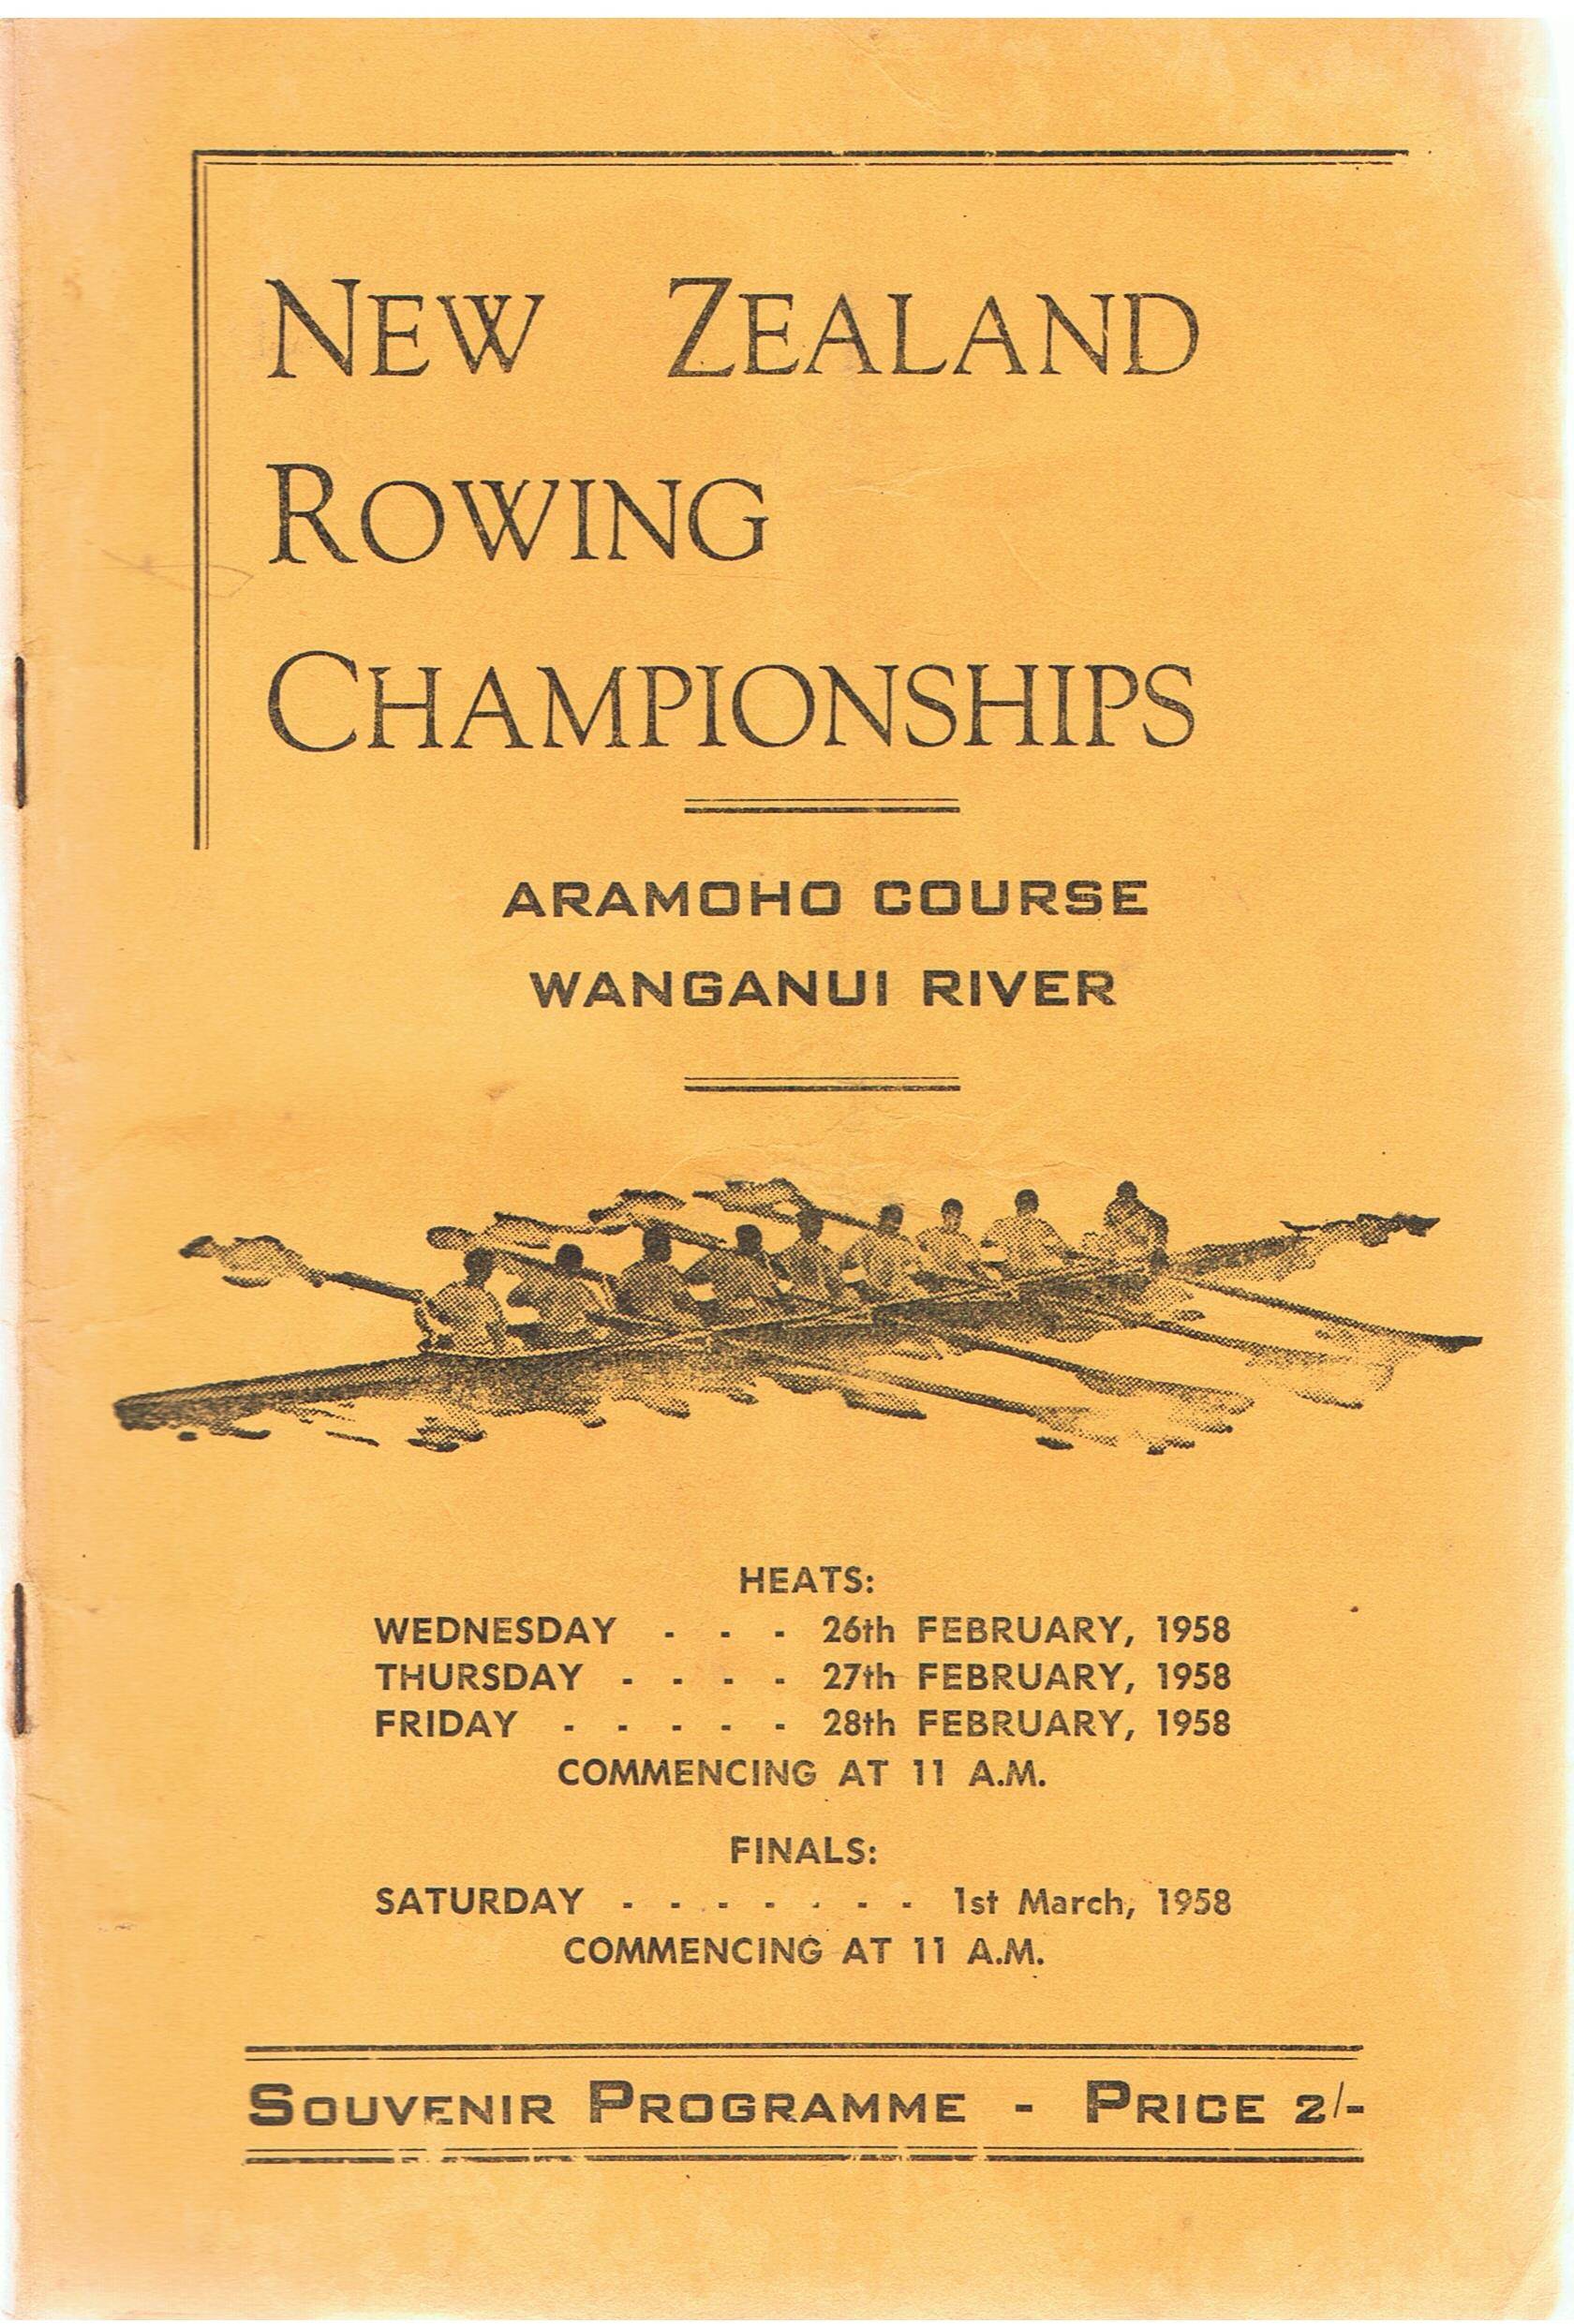 Image for New Zealand Rowing Championships 1958. Aramoho Course. Wanganui River. Souvenir Programme.